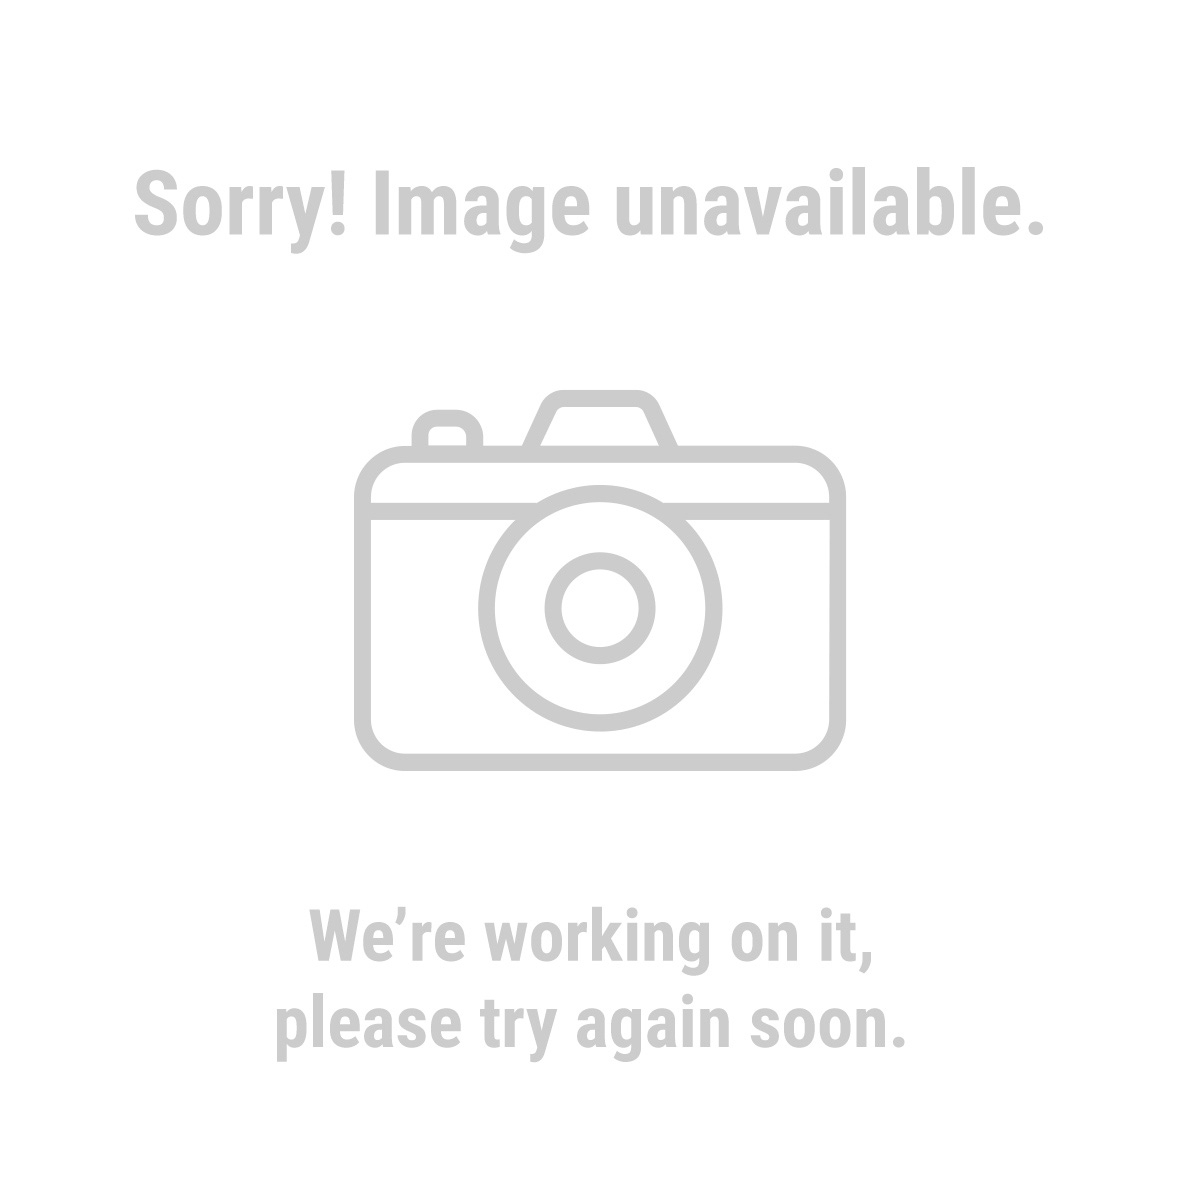 Central Pneumatic 69784 420, 1 gal., 180 Gas Powered Two-Stage Air Compressor